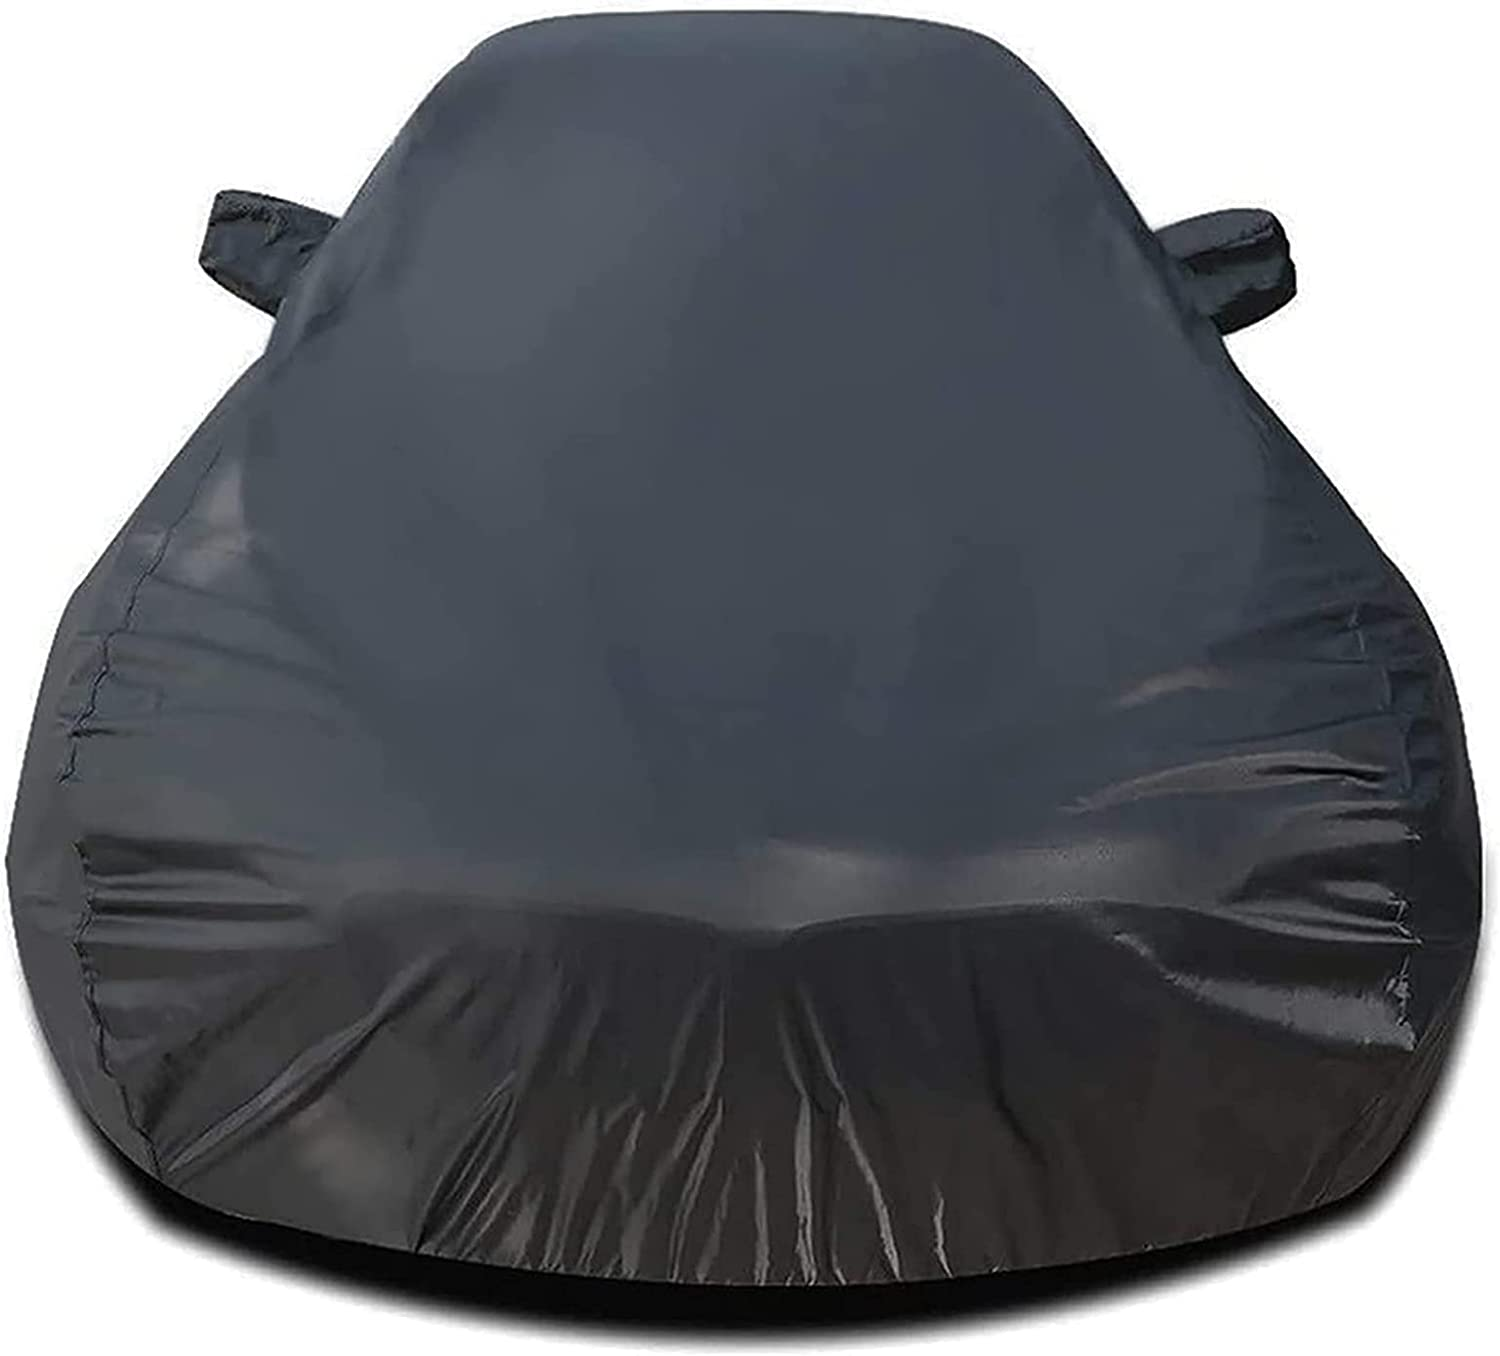 Washington Mall Car Cover Compatible with Max 88% OFF GLE300D GLE320 Mercedes-Benz GLE350